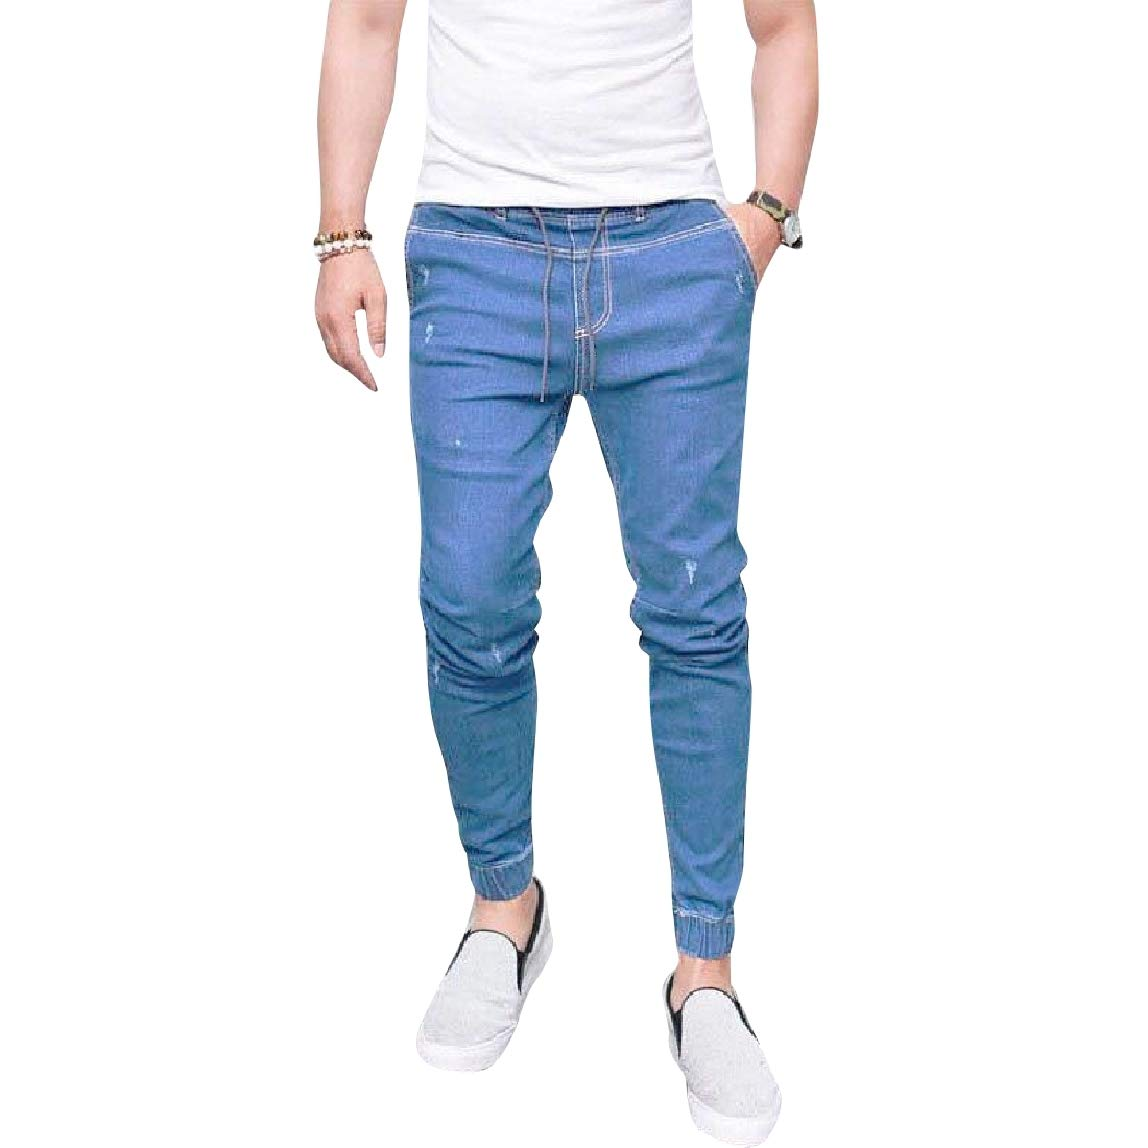 Mirrliy Mens Skinny Plus Size Elastic Waist Casual Bottom Jeans Pants